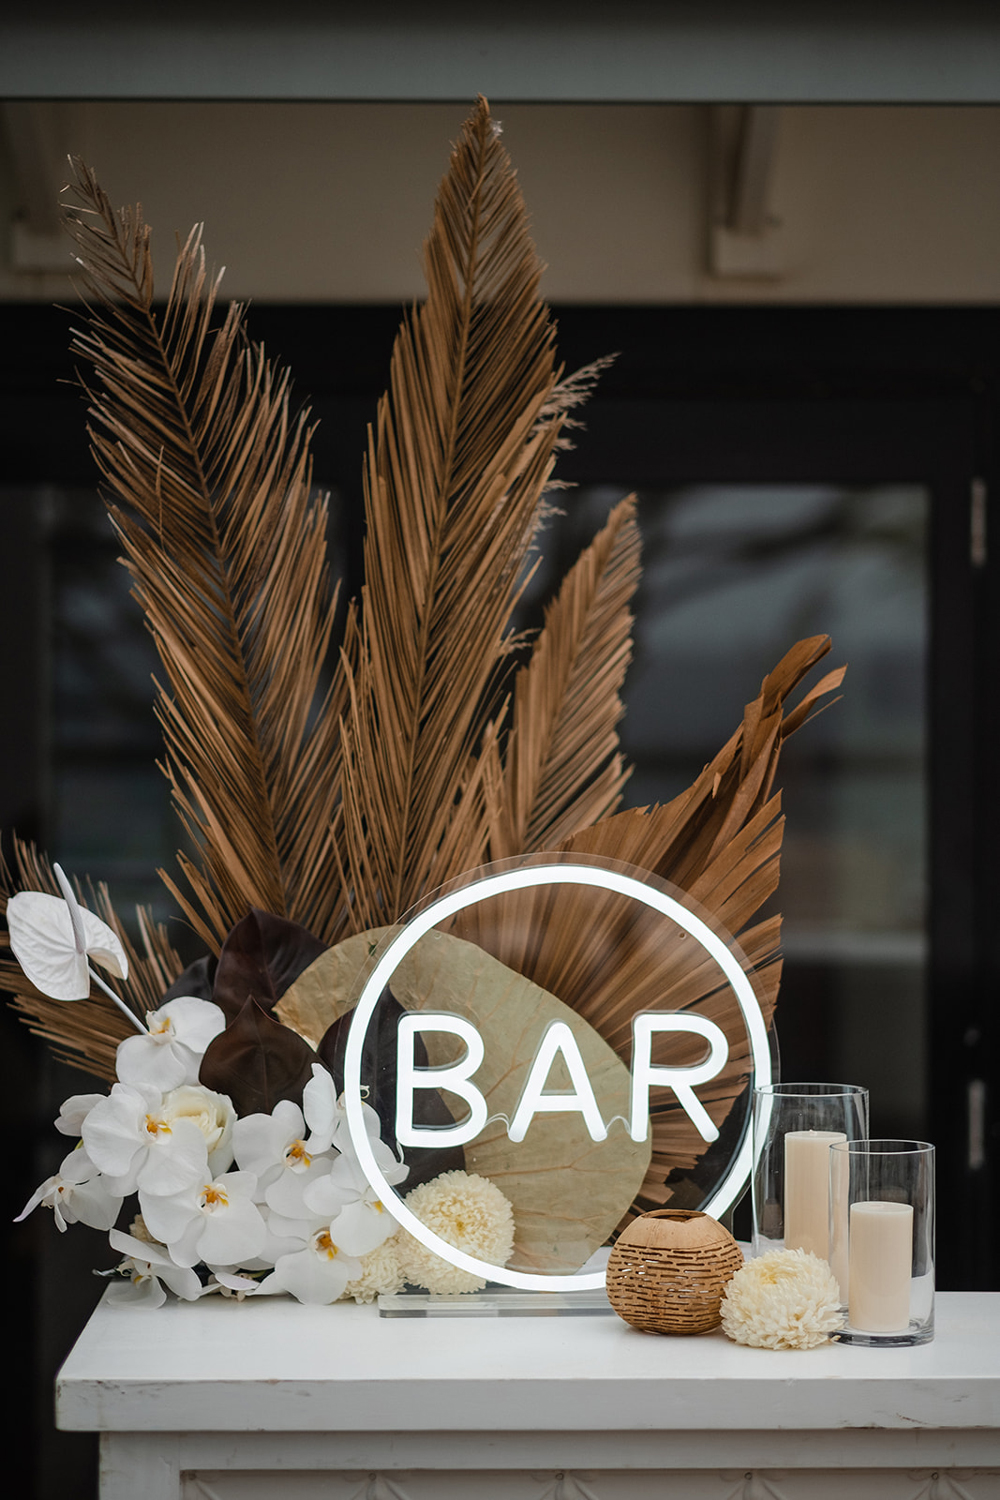 The-Event-Shed_Sea-Mist_BAR-sign.jpg